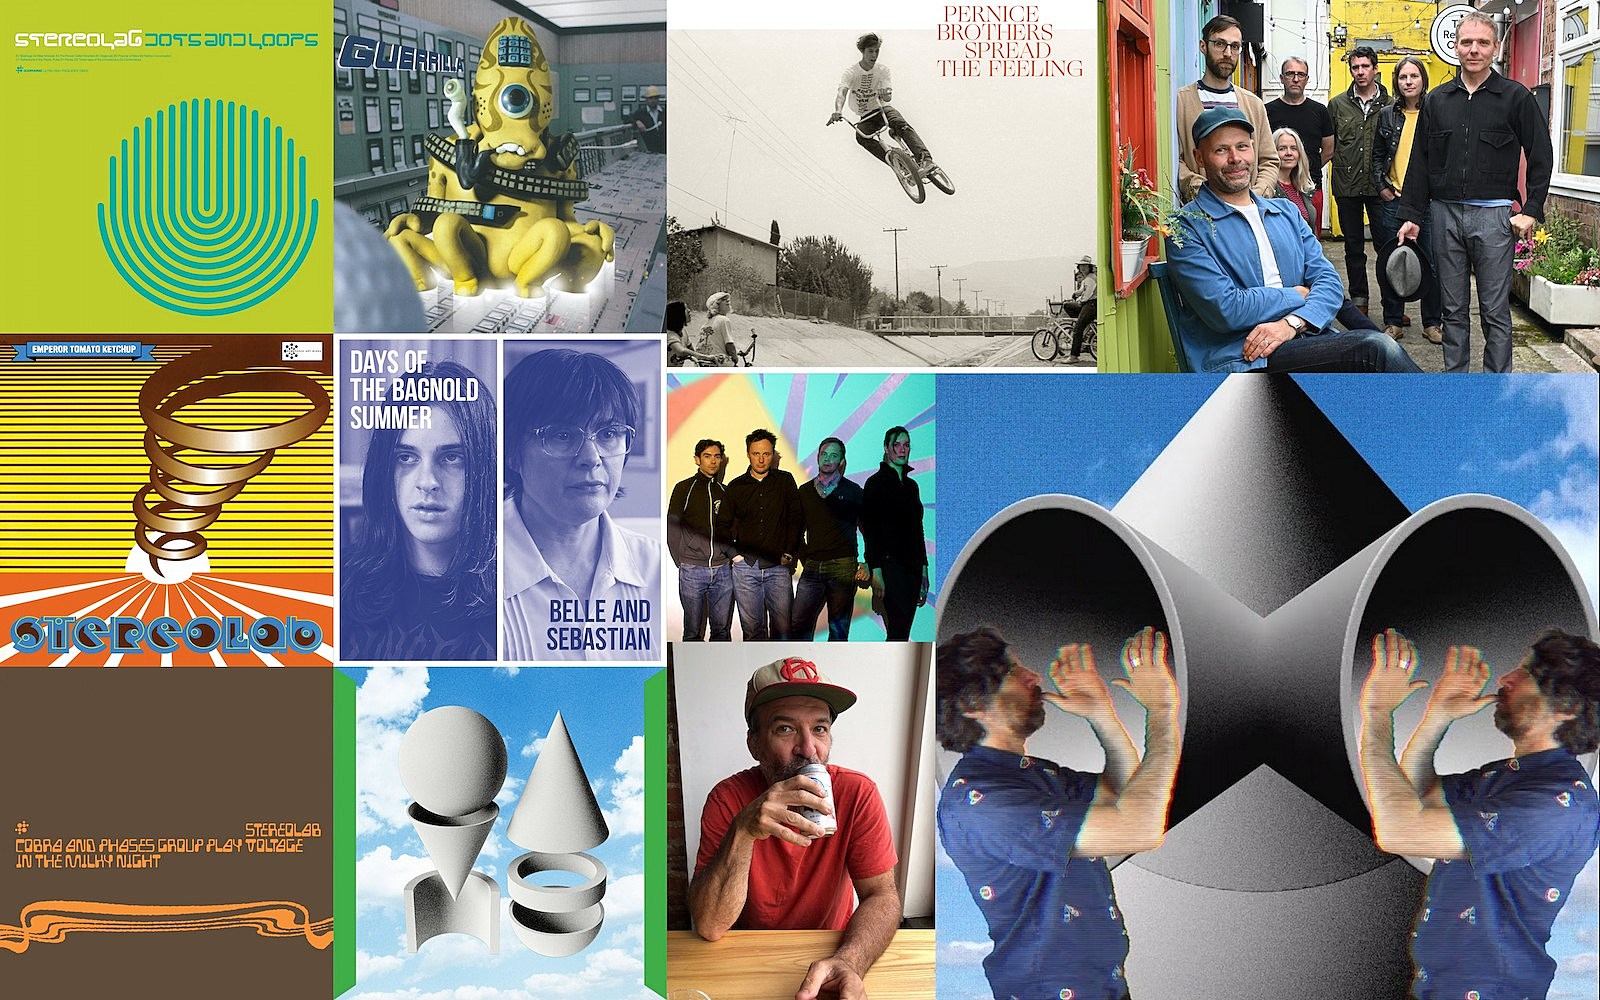 indie basement: super furry animals, gruff rhys, stereolab, pernice brothers, belle & sebastian, metronomy